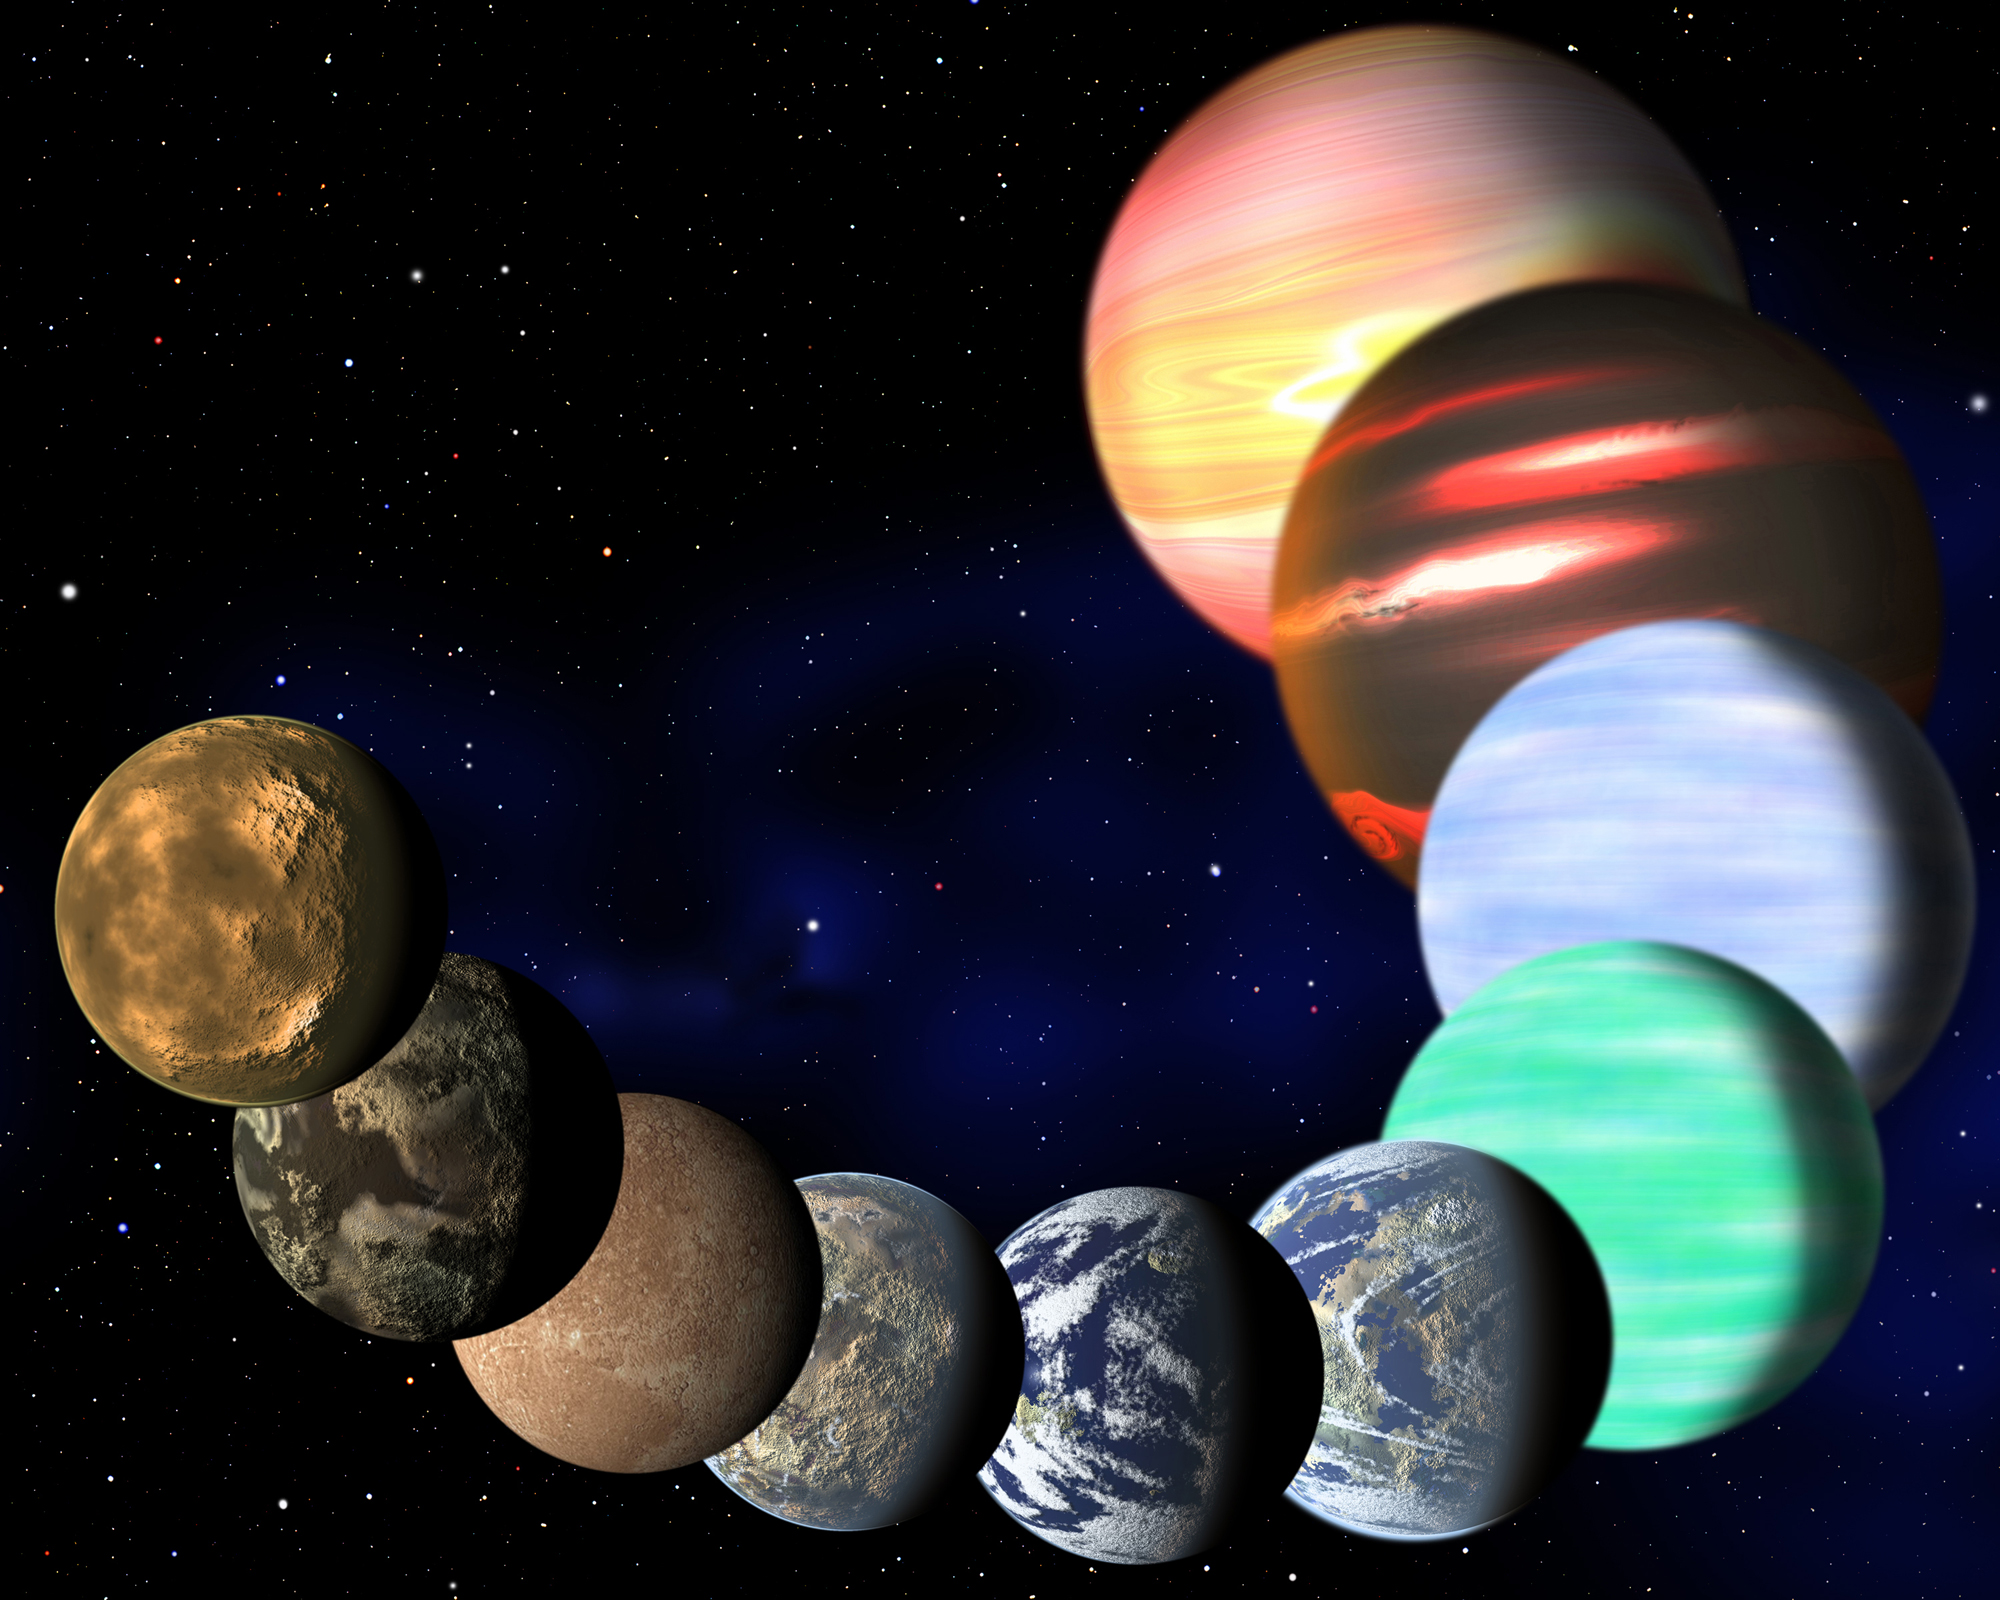 Alien Planets, Giant Galaxies and More